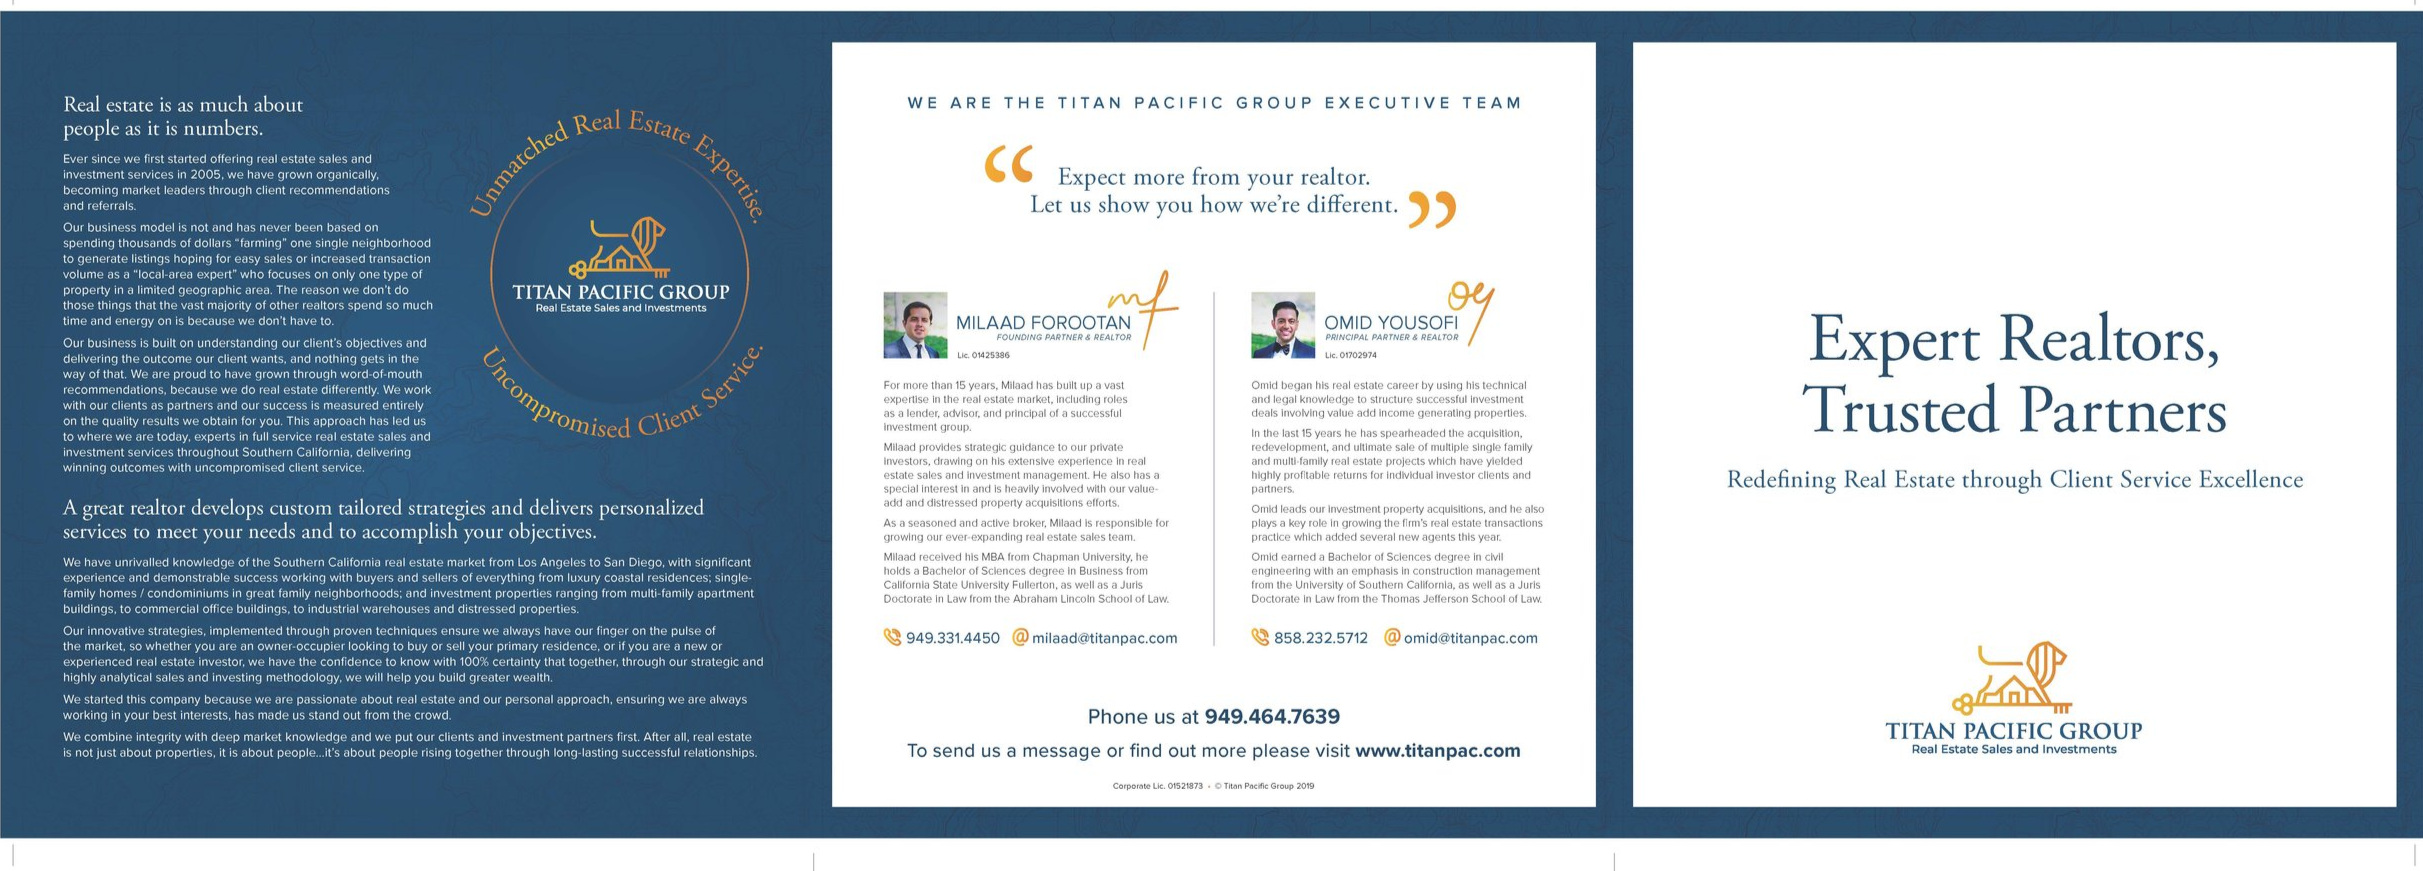 Download our brochure to find out why you should expect more from your Realtor   →